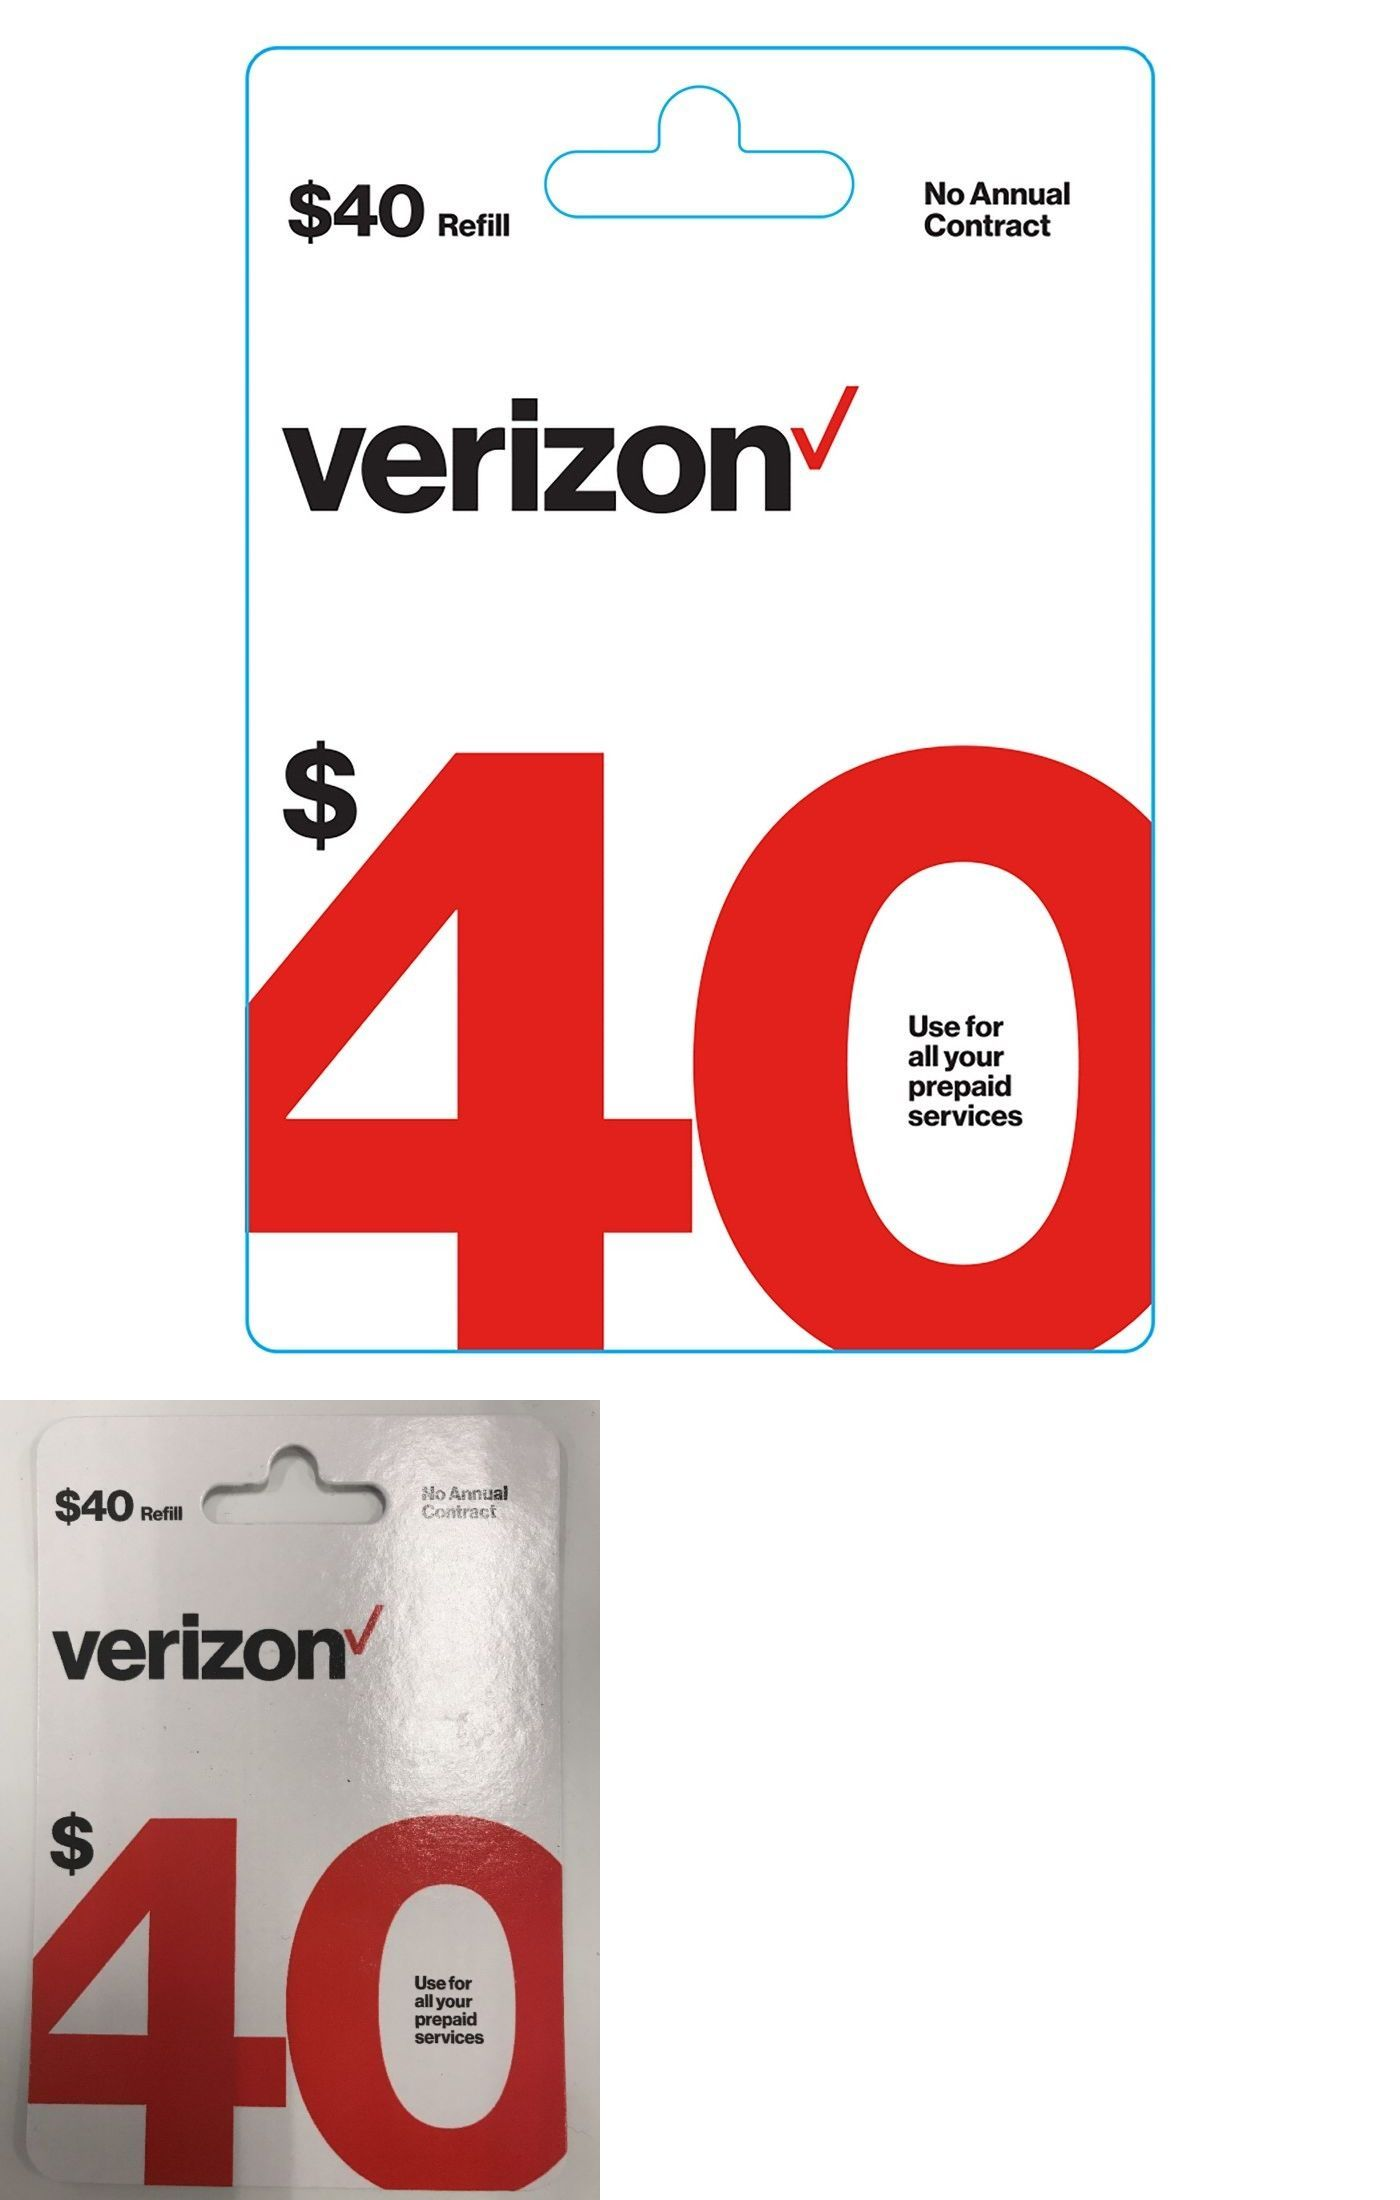 Phone And Data Cards 43308 Verizon Prepaid 40 Refill Card Instant Ebay Code Delivery Buy It Now Verizon Prepaid Prepaid Phones International Sim Card